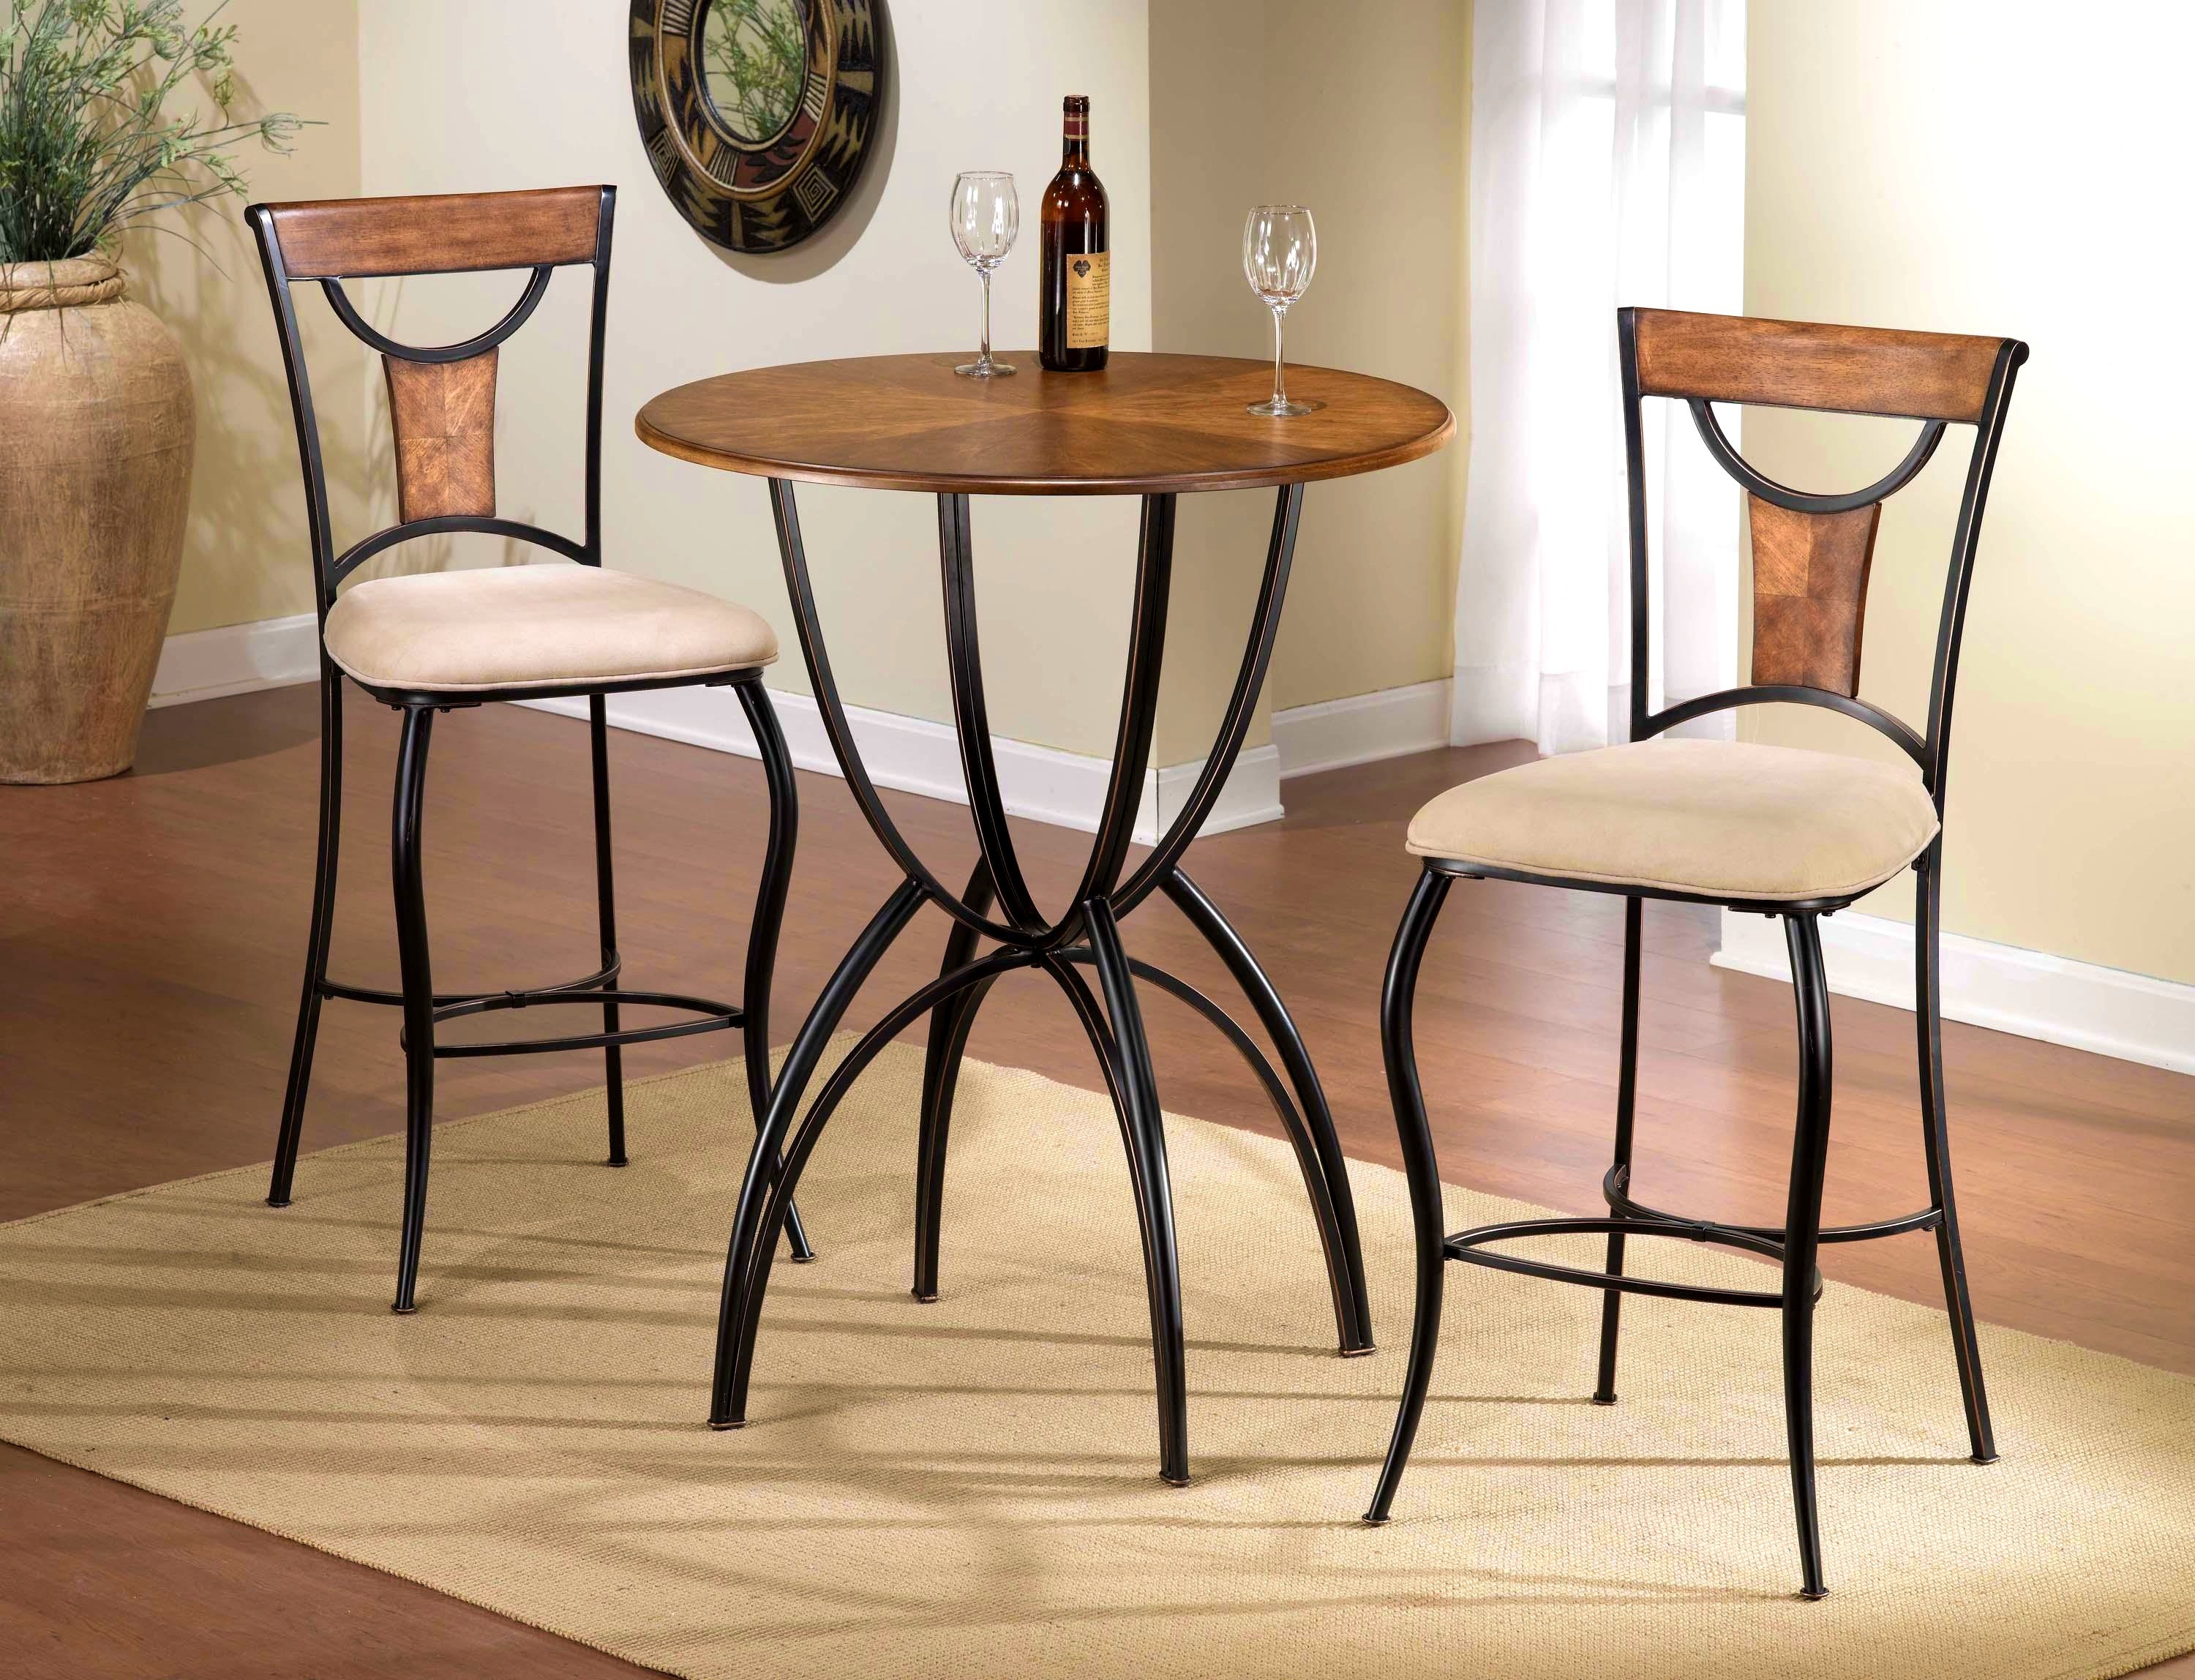 Permalink to Small Kitchen Bistro Table Set